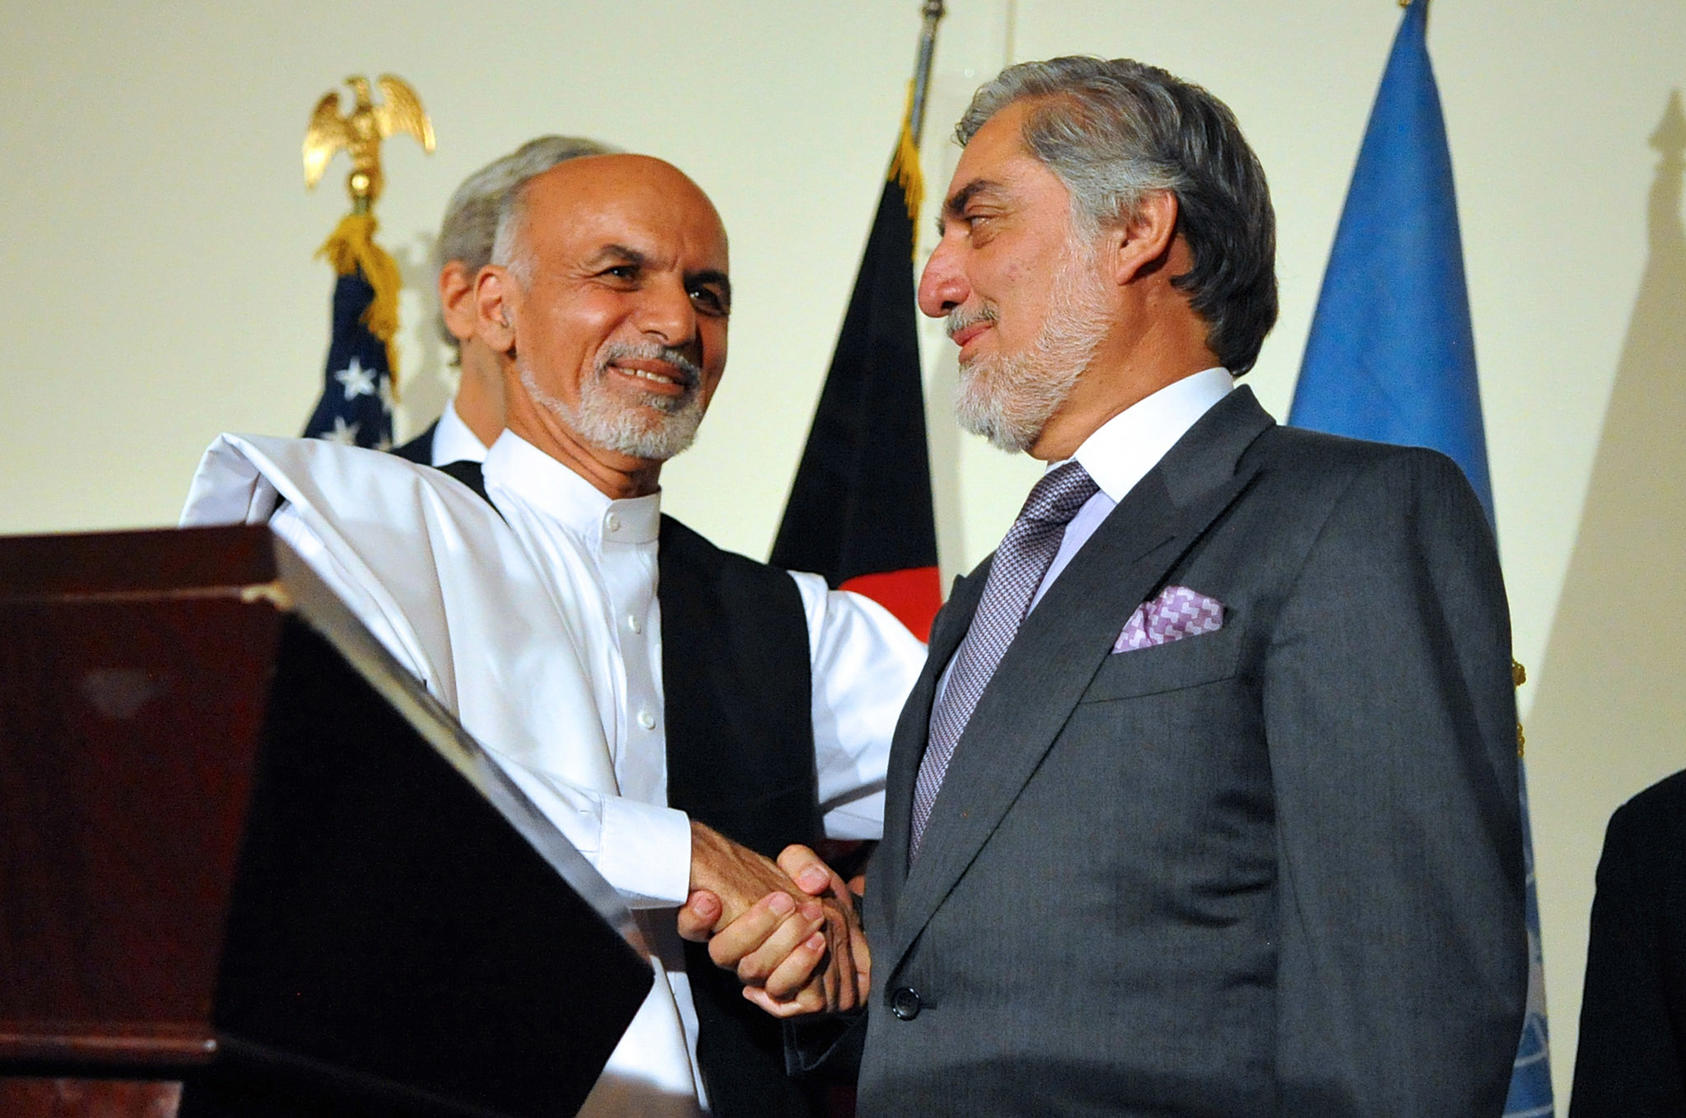 Ashraf Ghani shakes hands with rival Abdullah Abdullah after both addressed reporters at in Kabul on July 12, 2014 about the details of the U.S.-brokered National Unity Government agreement. (U.S. Department of State)